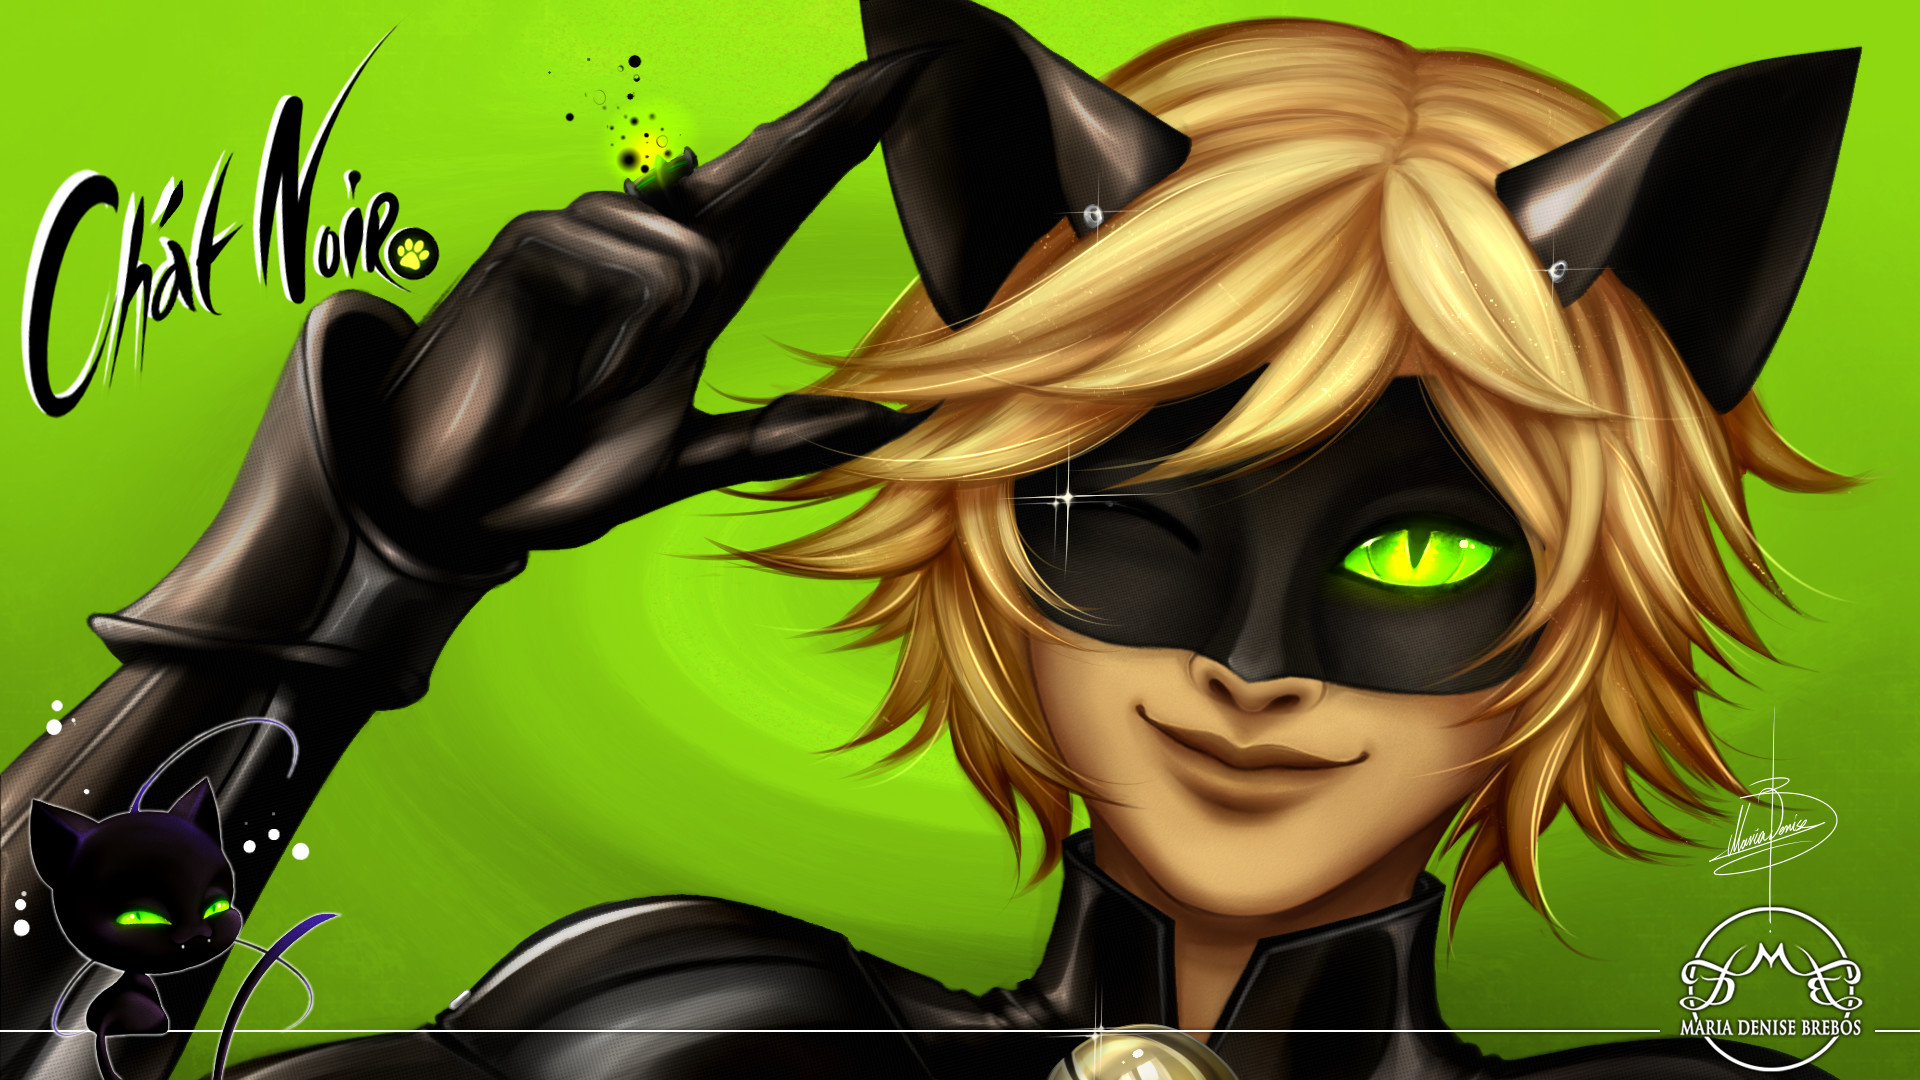 Maria Denise Brebos Miraculous Ladybug And Chat Noir